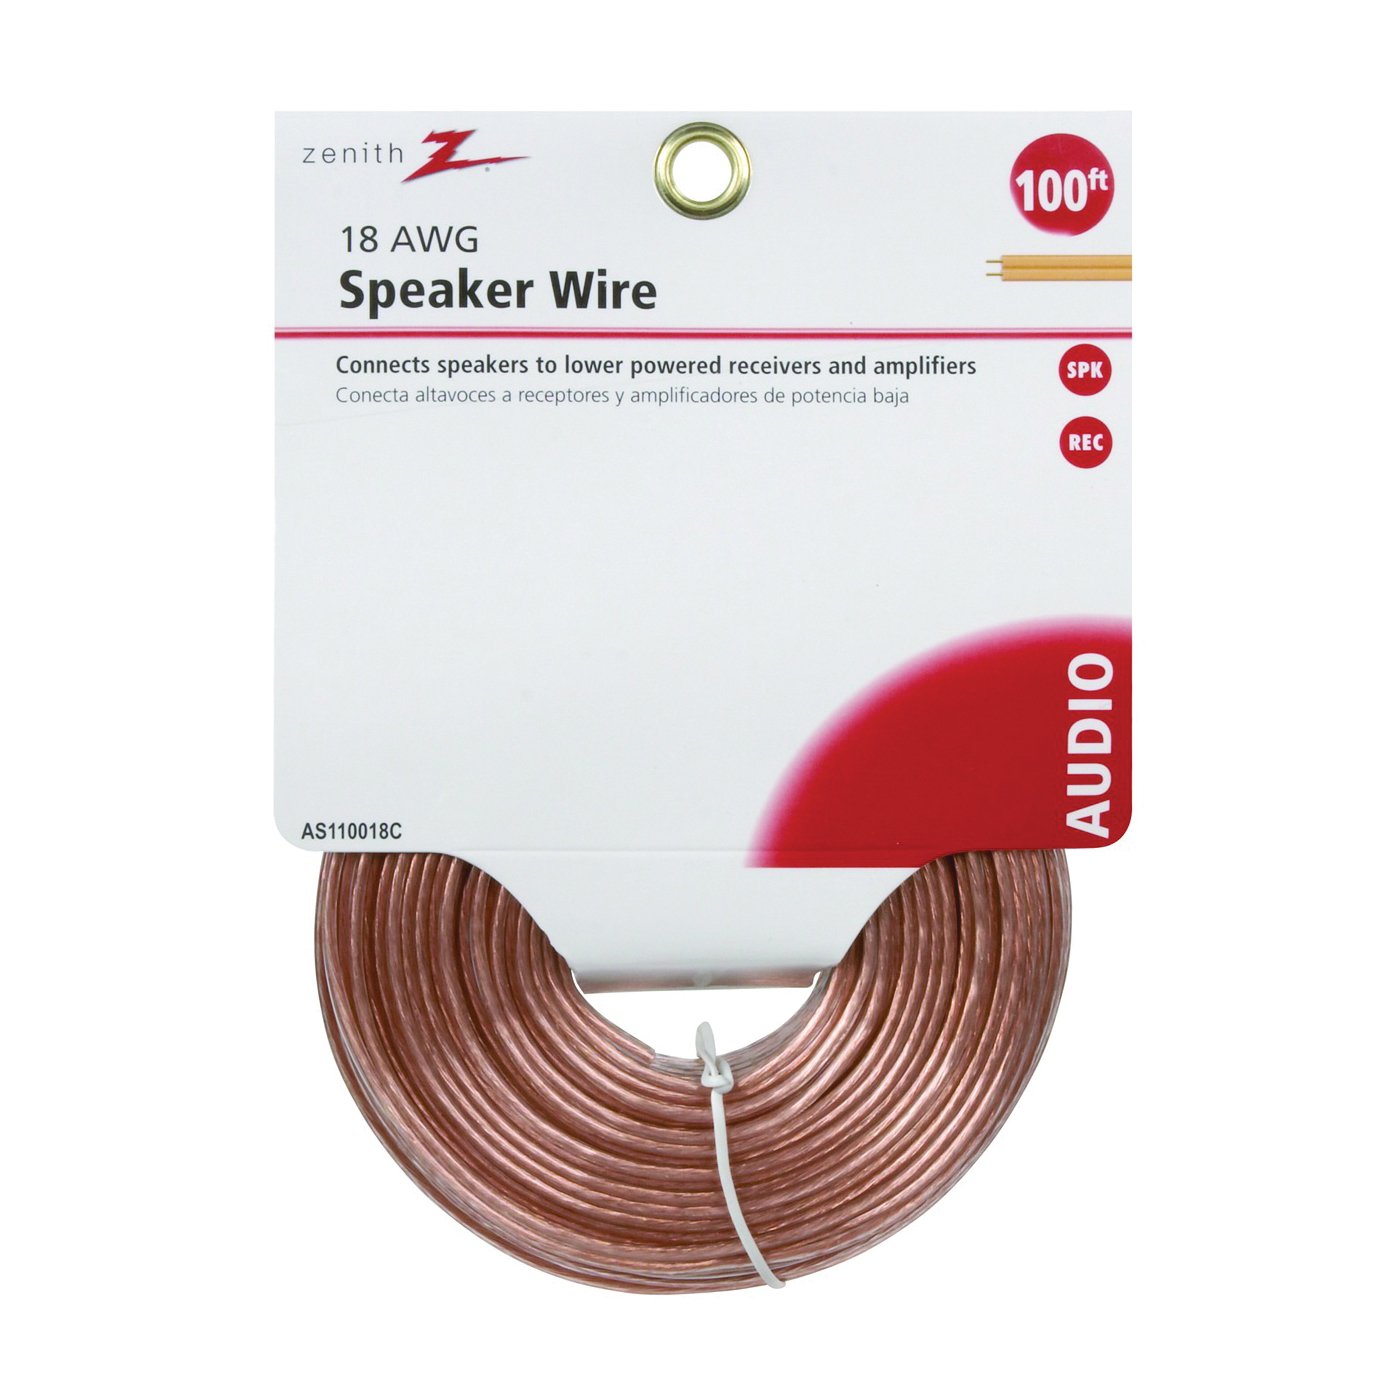 Picture of Zenith AS110018C Speaker Wire, 18 AWG Wire, PVC Sheath, Clear Sheath